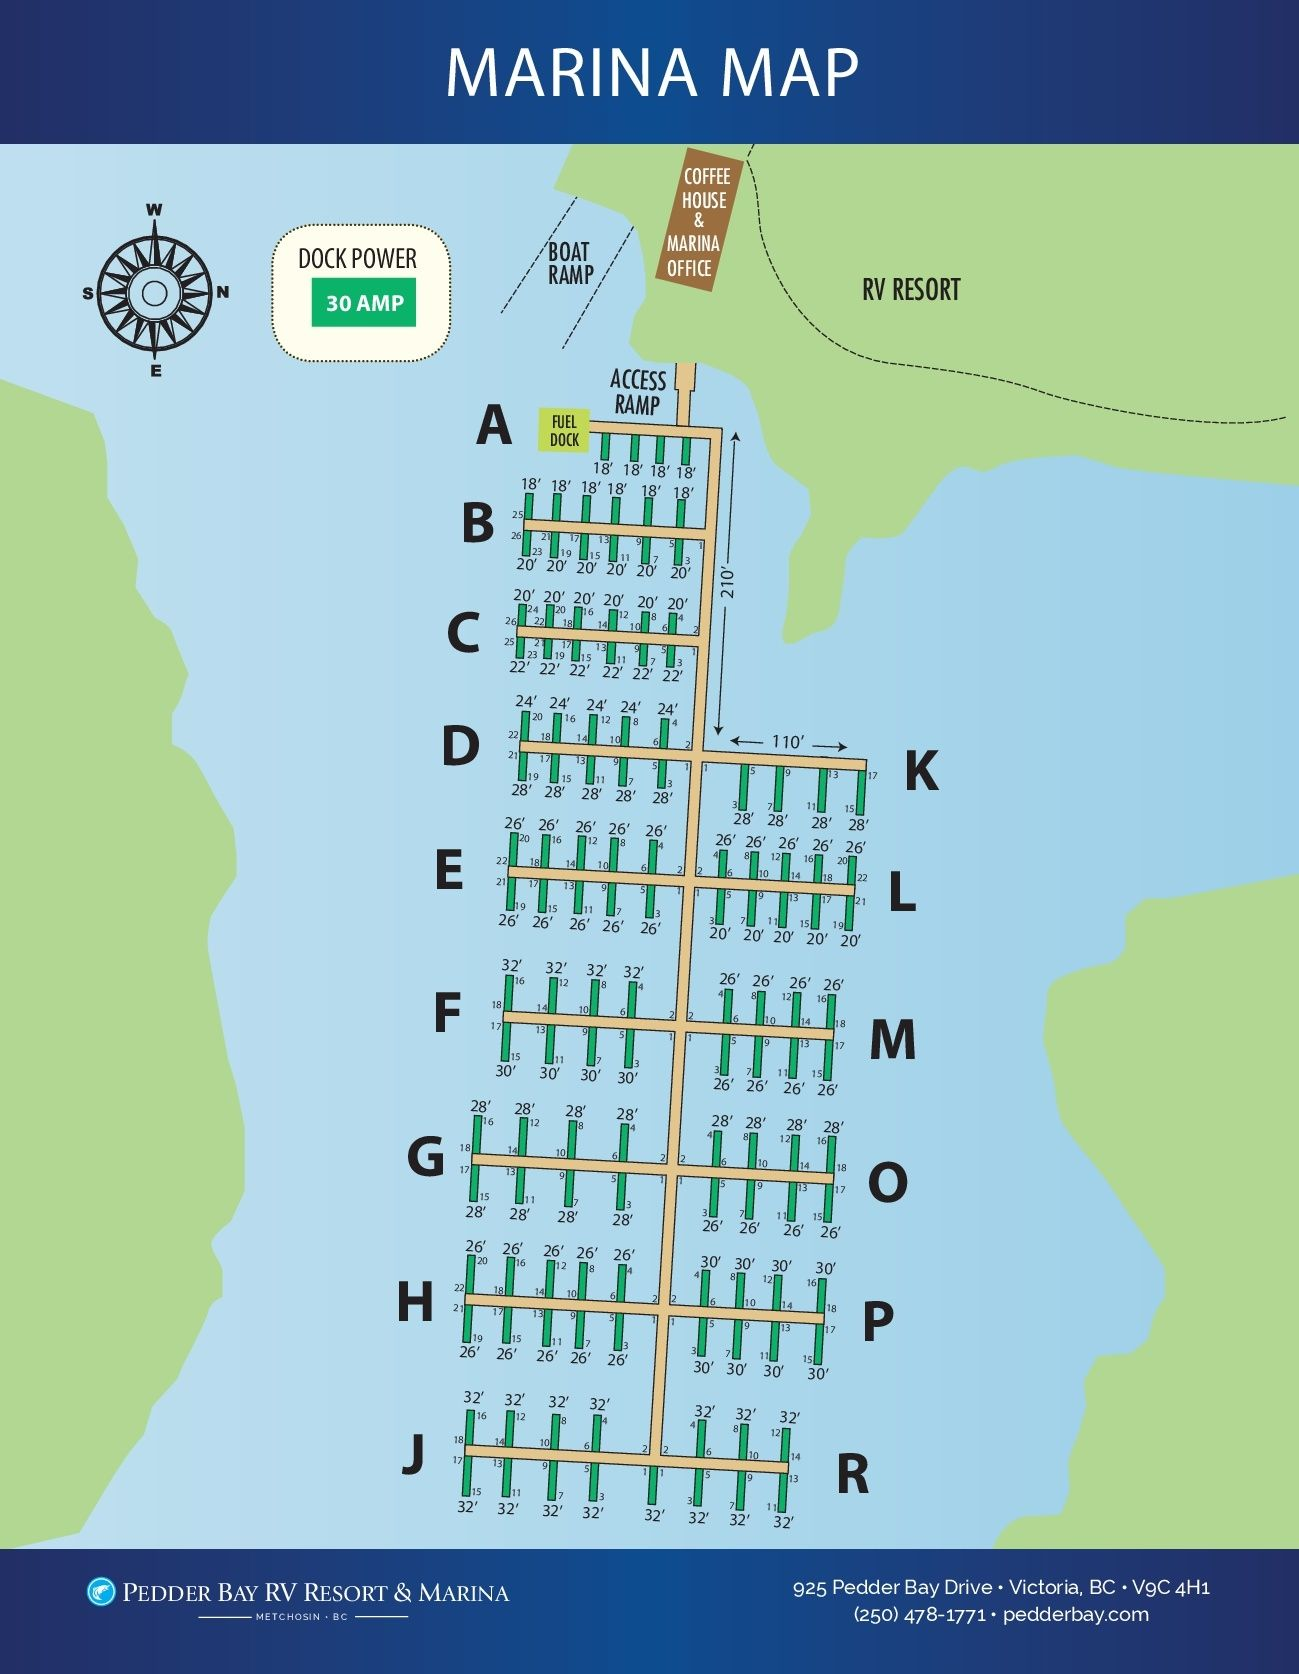 PBRV MARINA AND RV MAP MARCH 2017-002